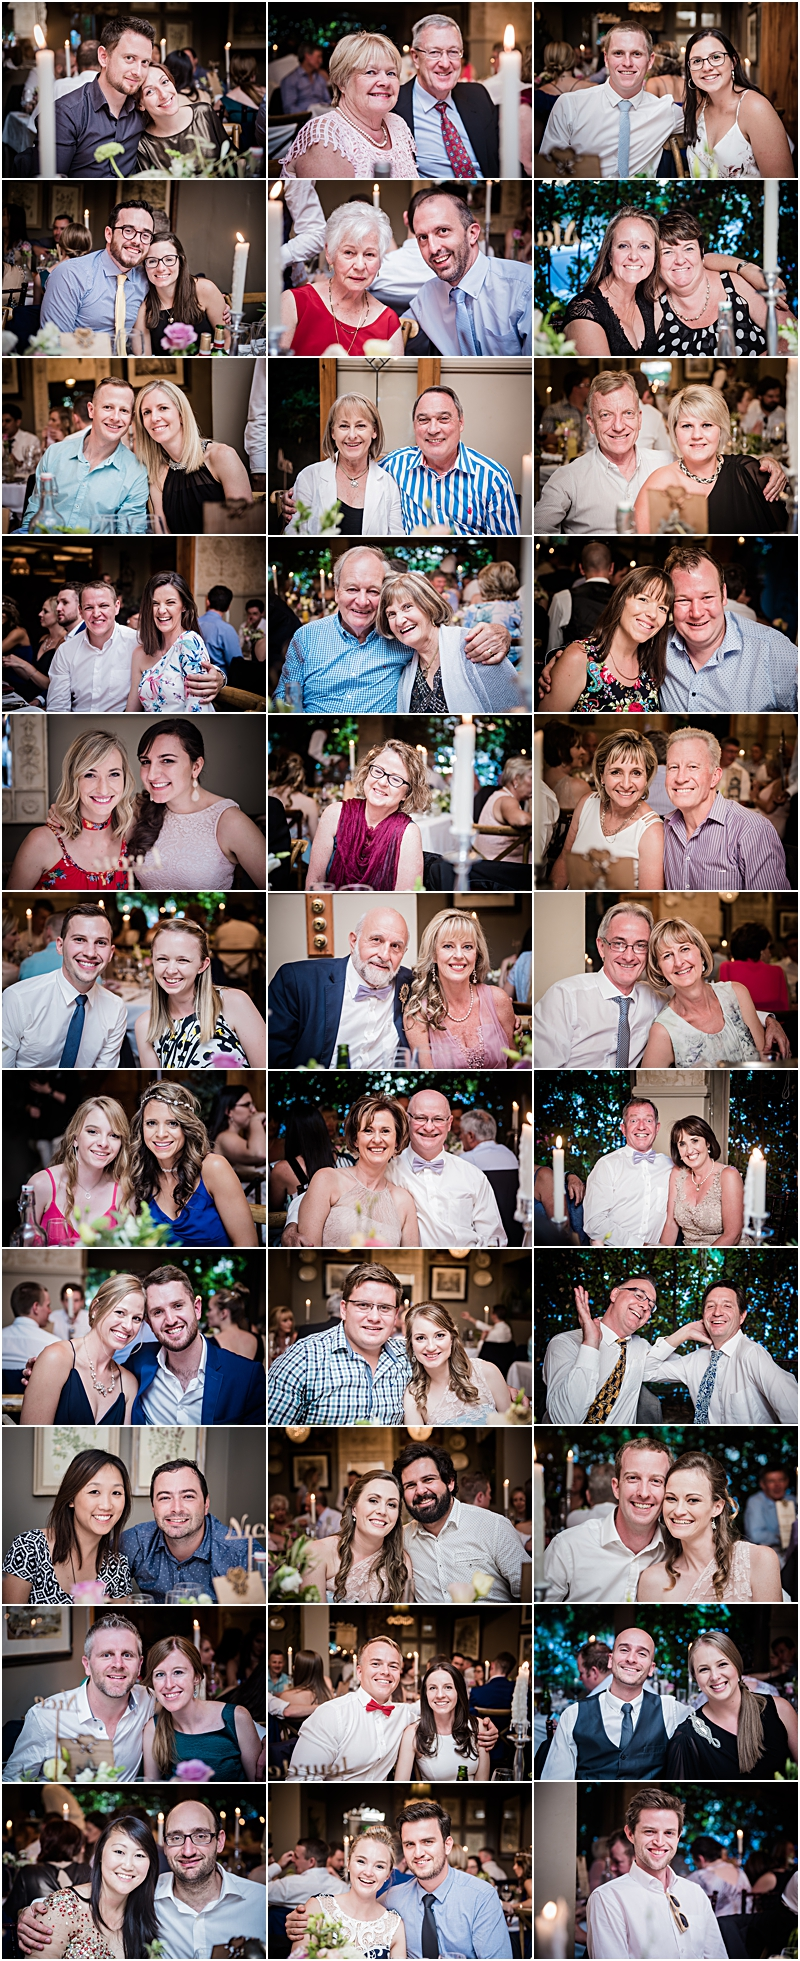 Best wedding photographer - AlexanderSmith_5669.jpg